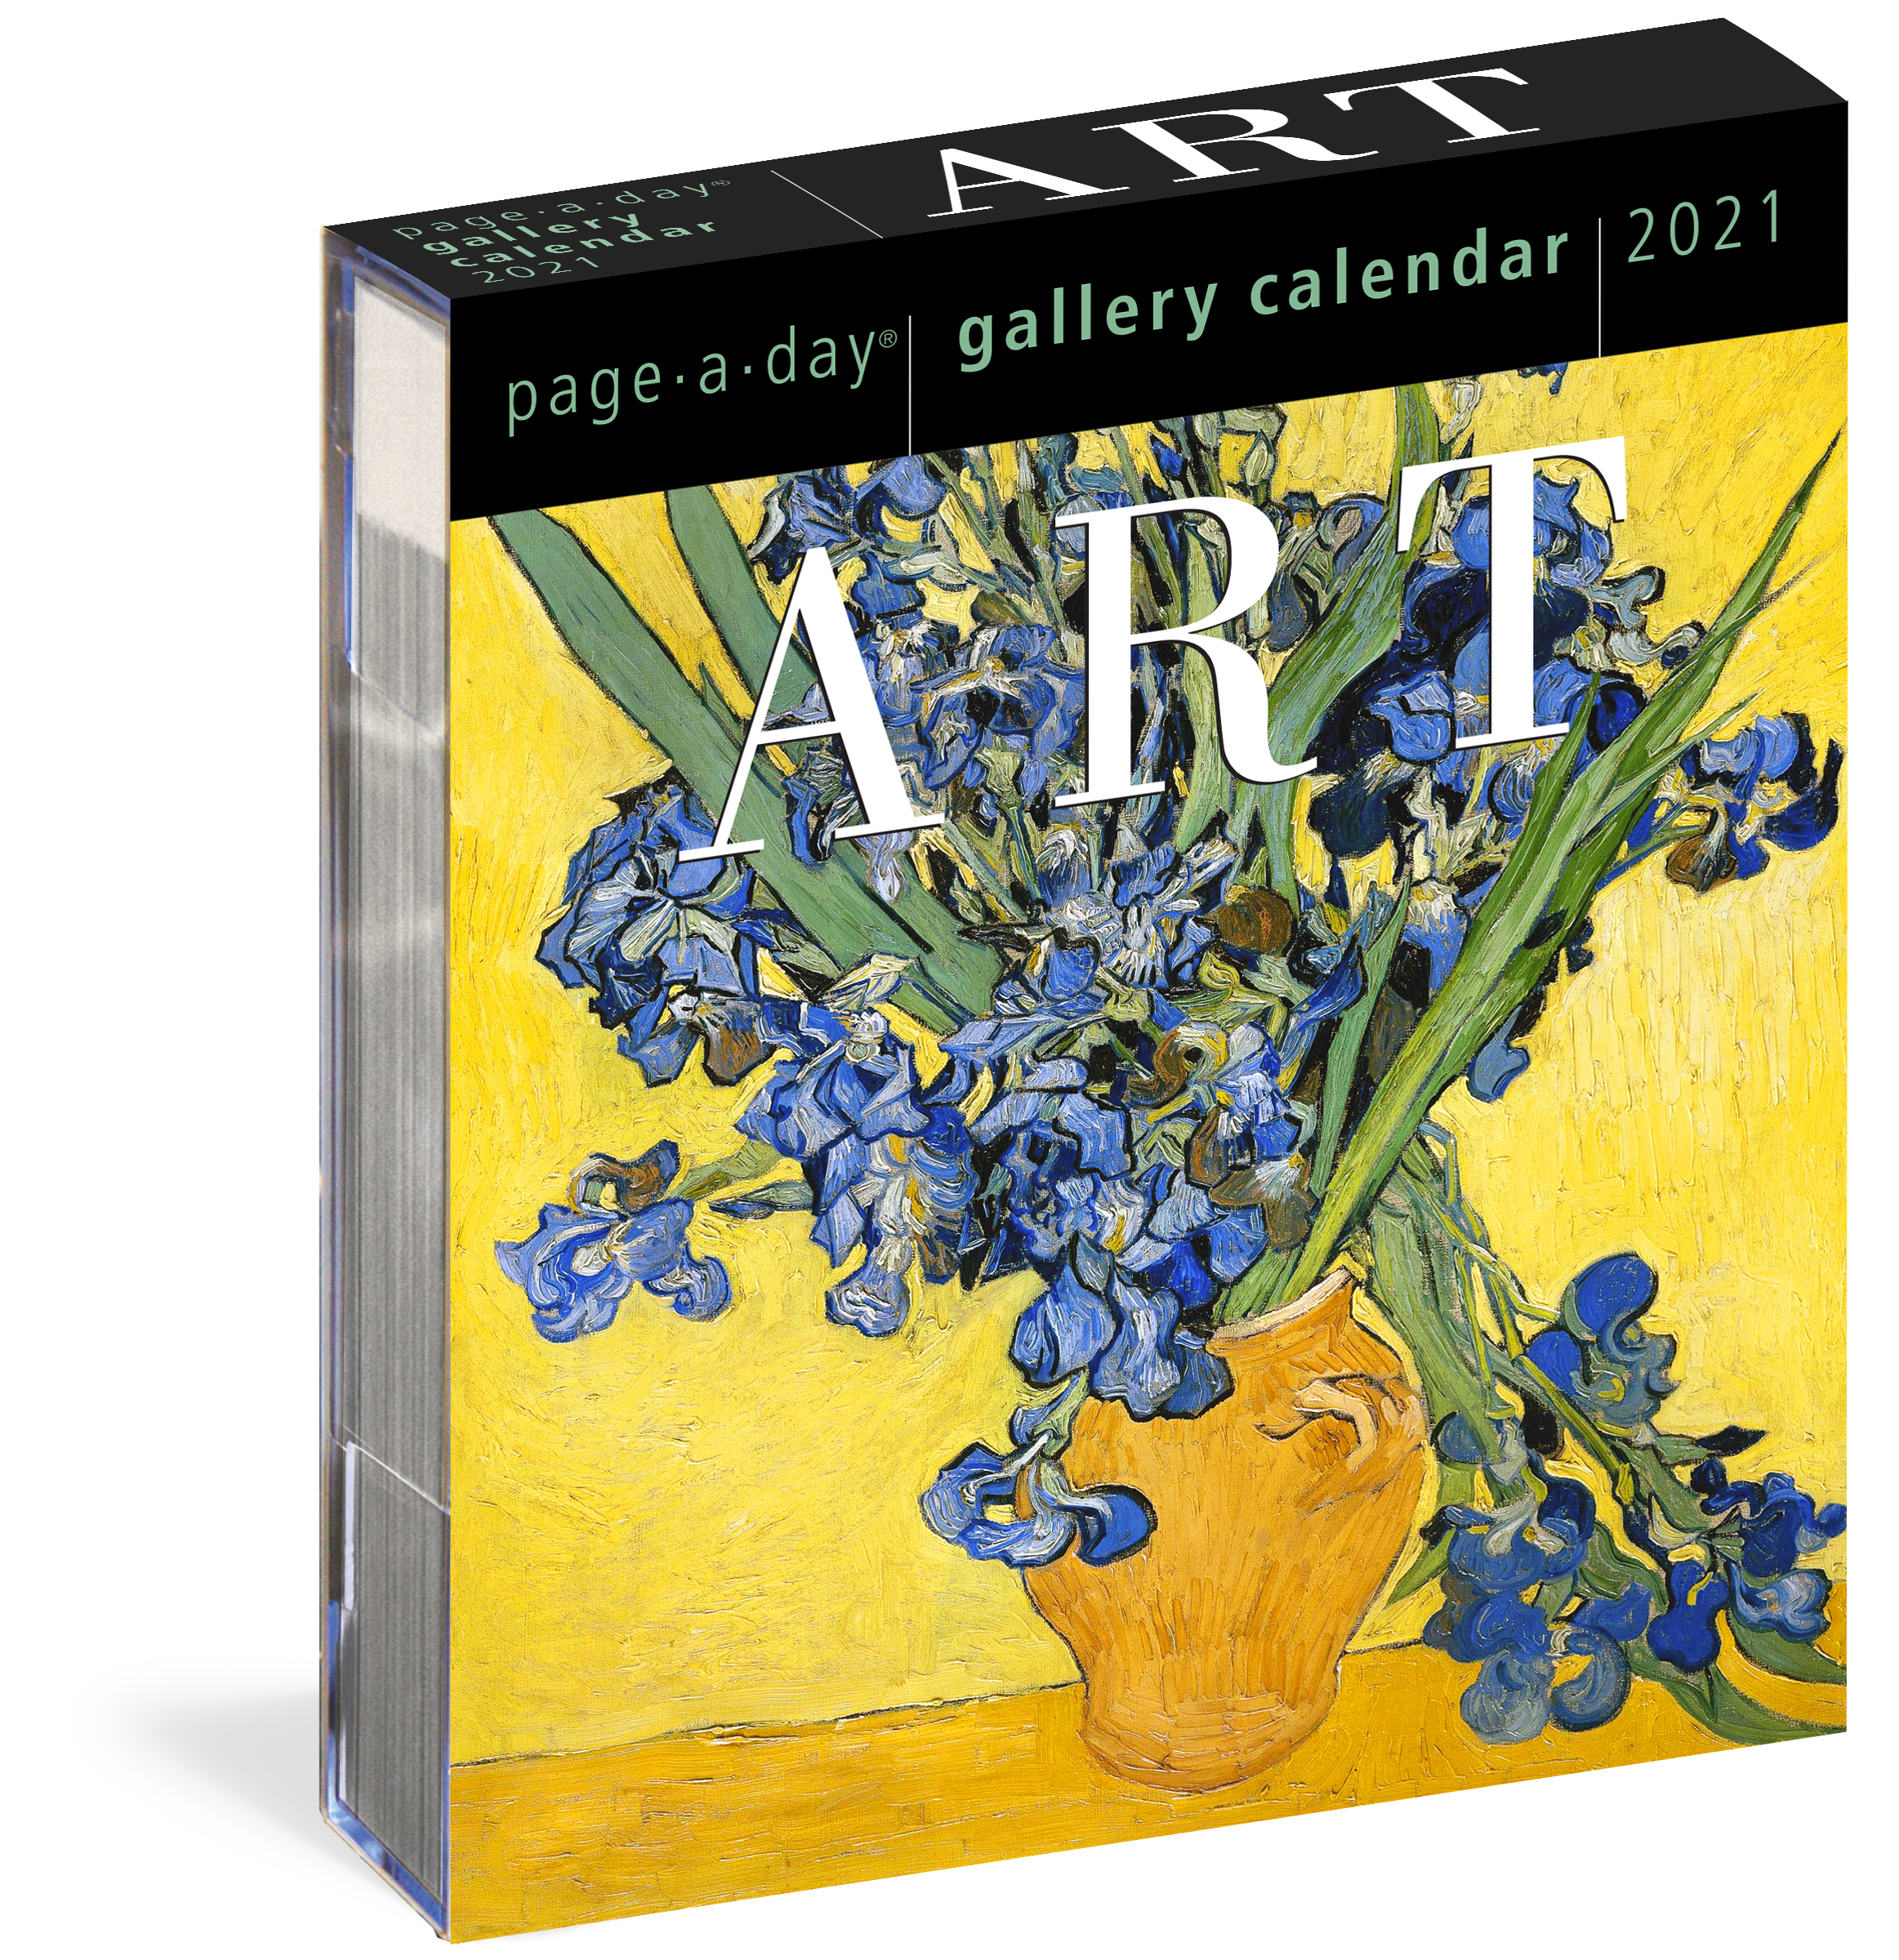 Art Page A Day Gallery Calendar 2021   Workman Publishing